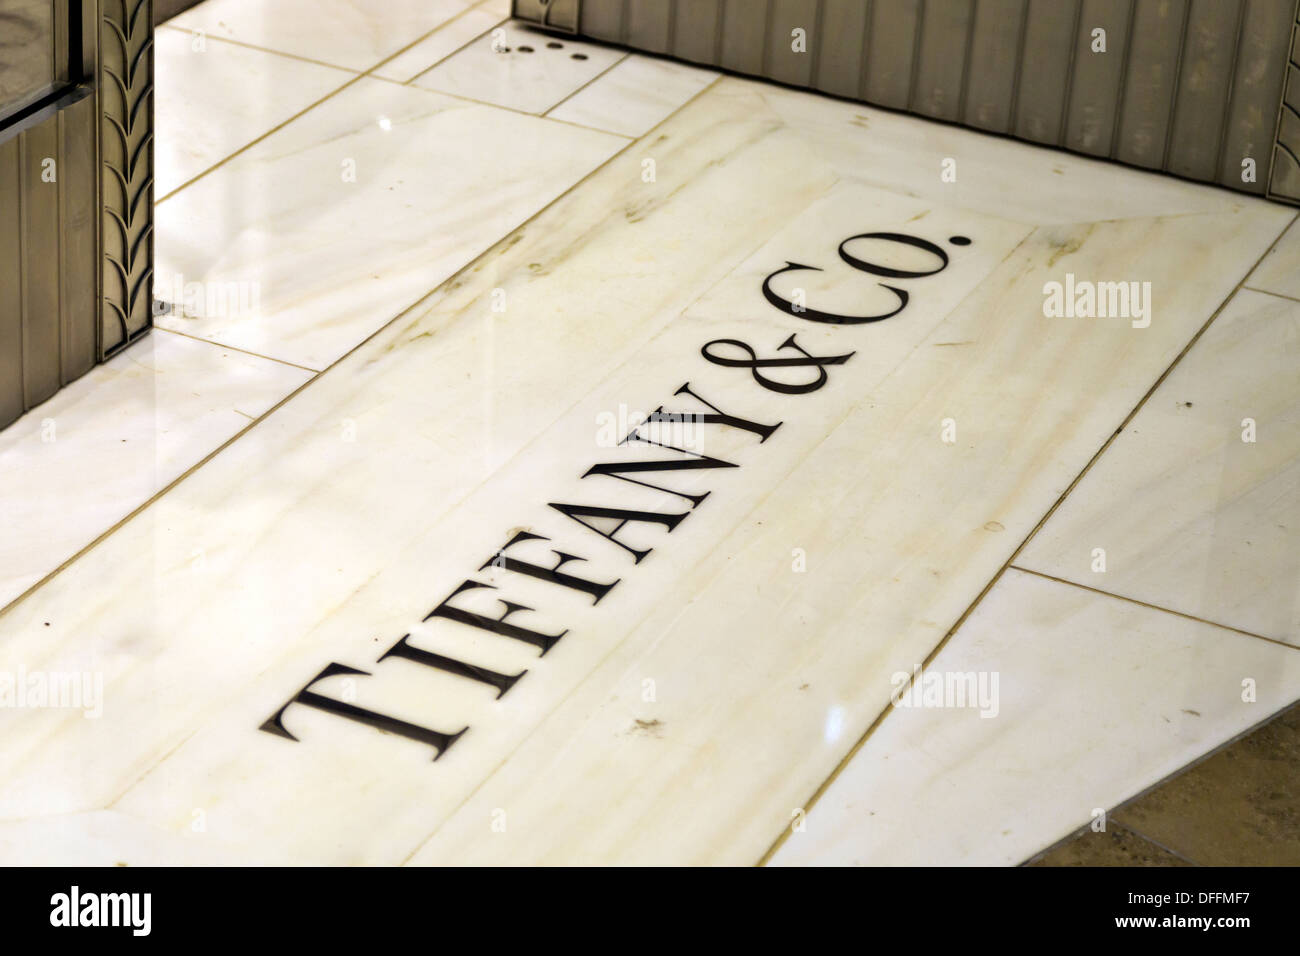 Tiffany & Co. engraving on tile flooring in front of store ...